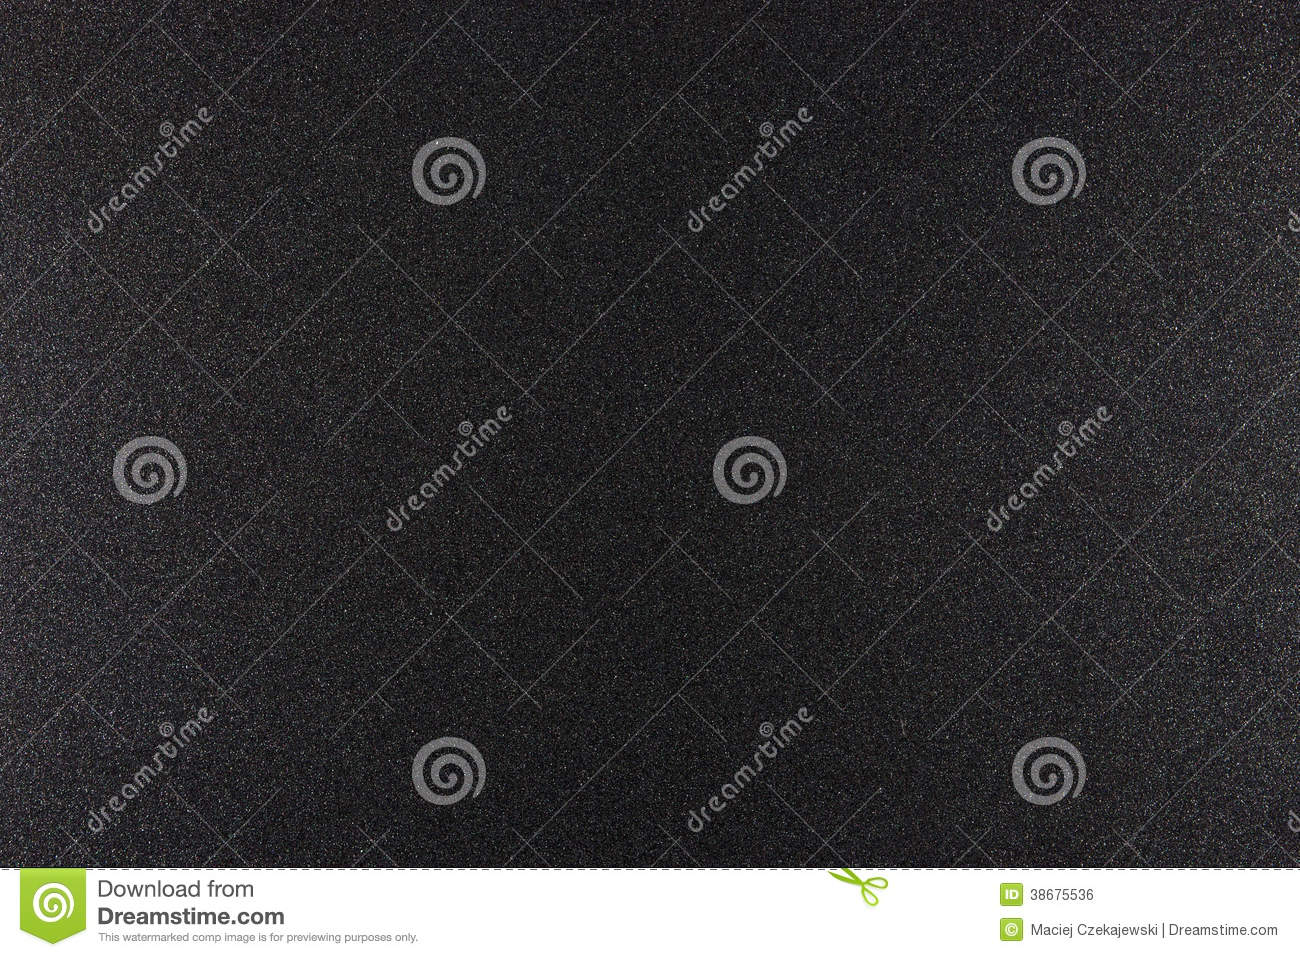 Jpg Texture Background Free Stock Photos Download 105 545: Surface Of Black Coarse Iron Stock Photo